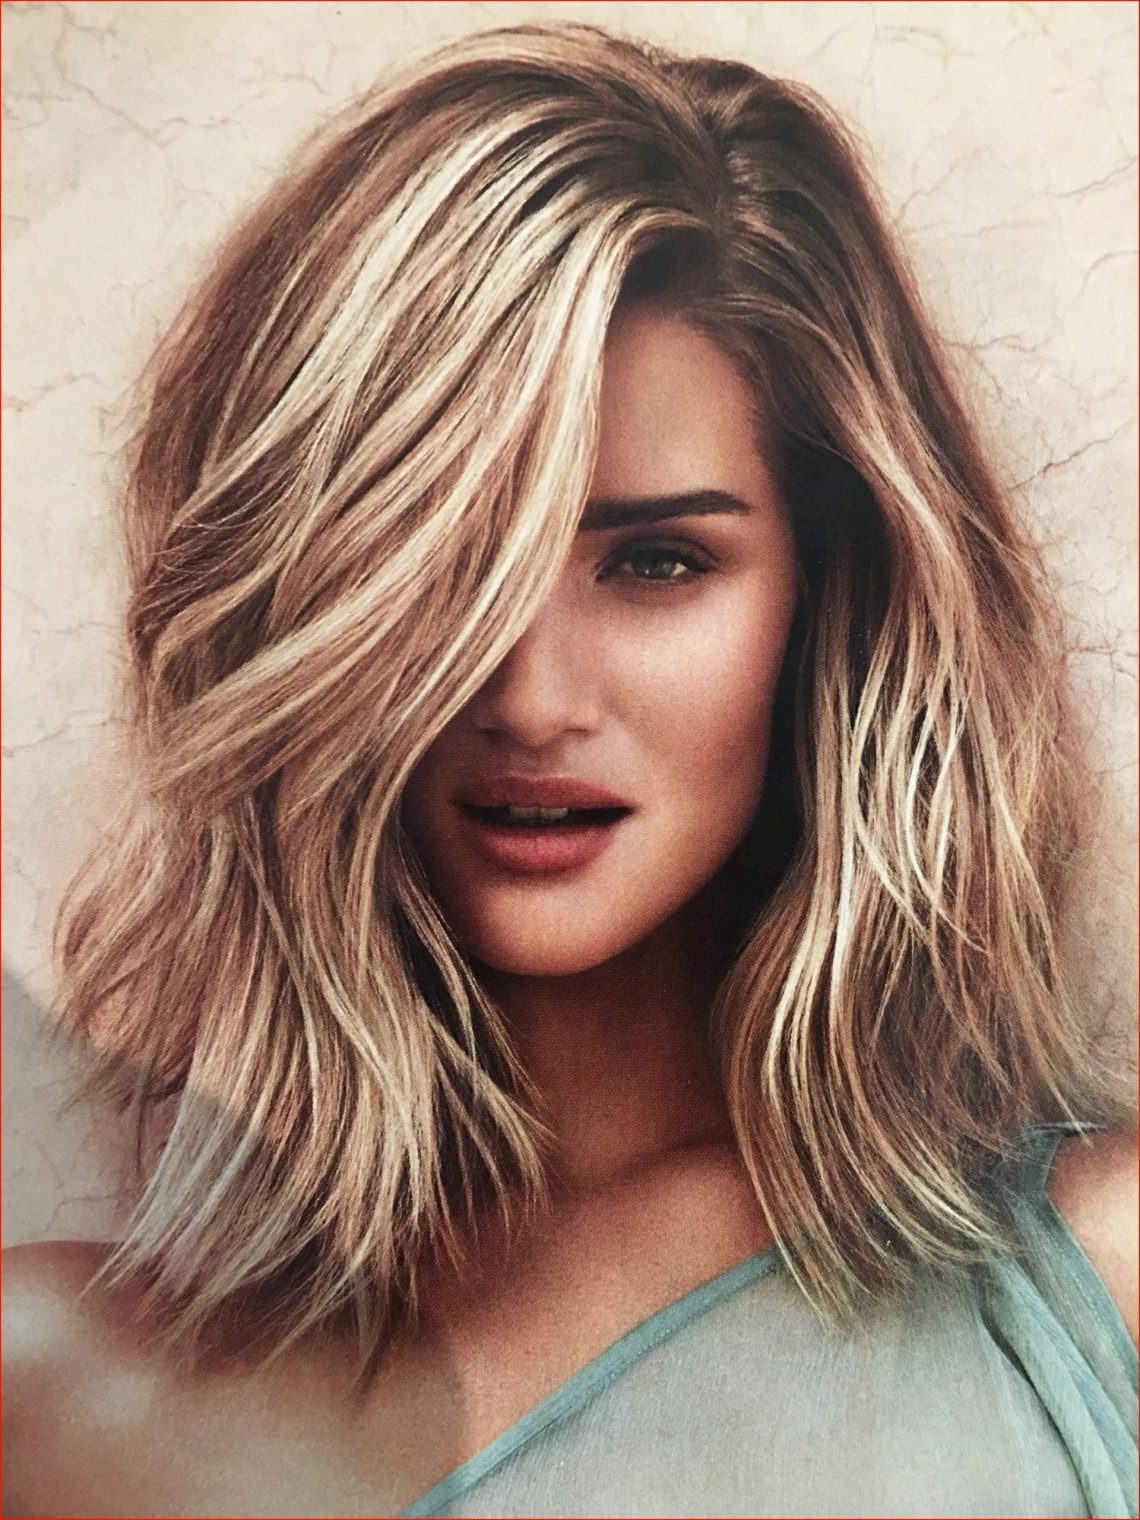 Unique Low Maintenance Medium Length Hairstyles Collection 20+ Adorable Medium Haircuts Low Maintenance 2020 Hairstyles